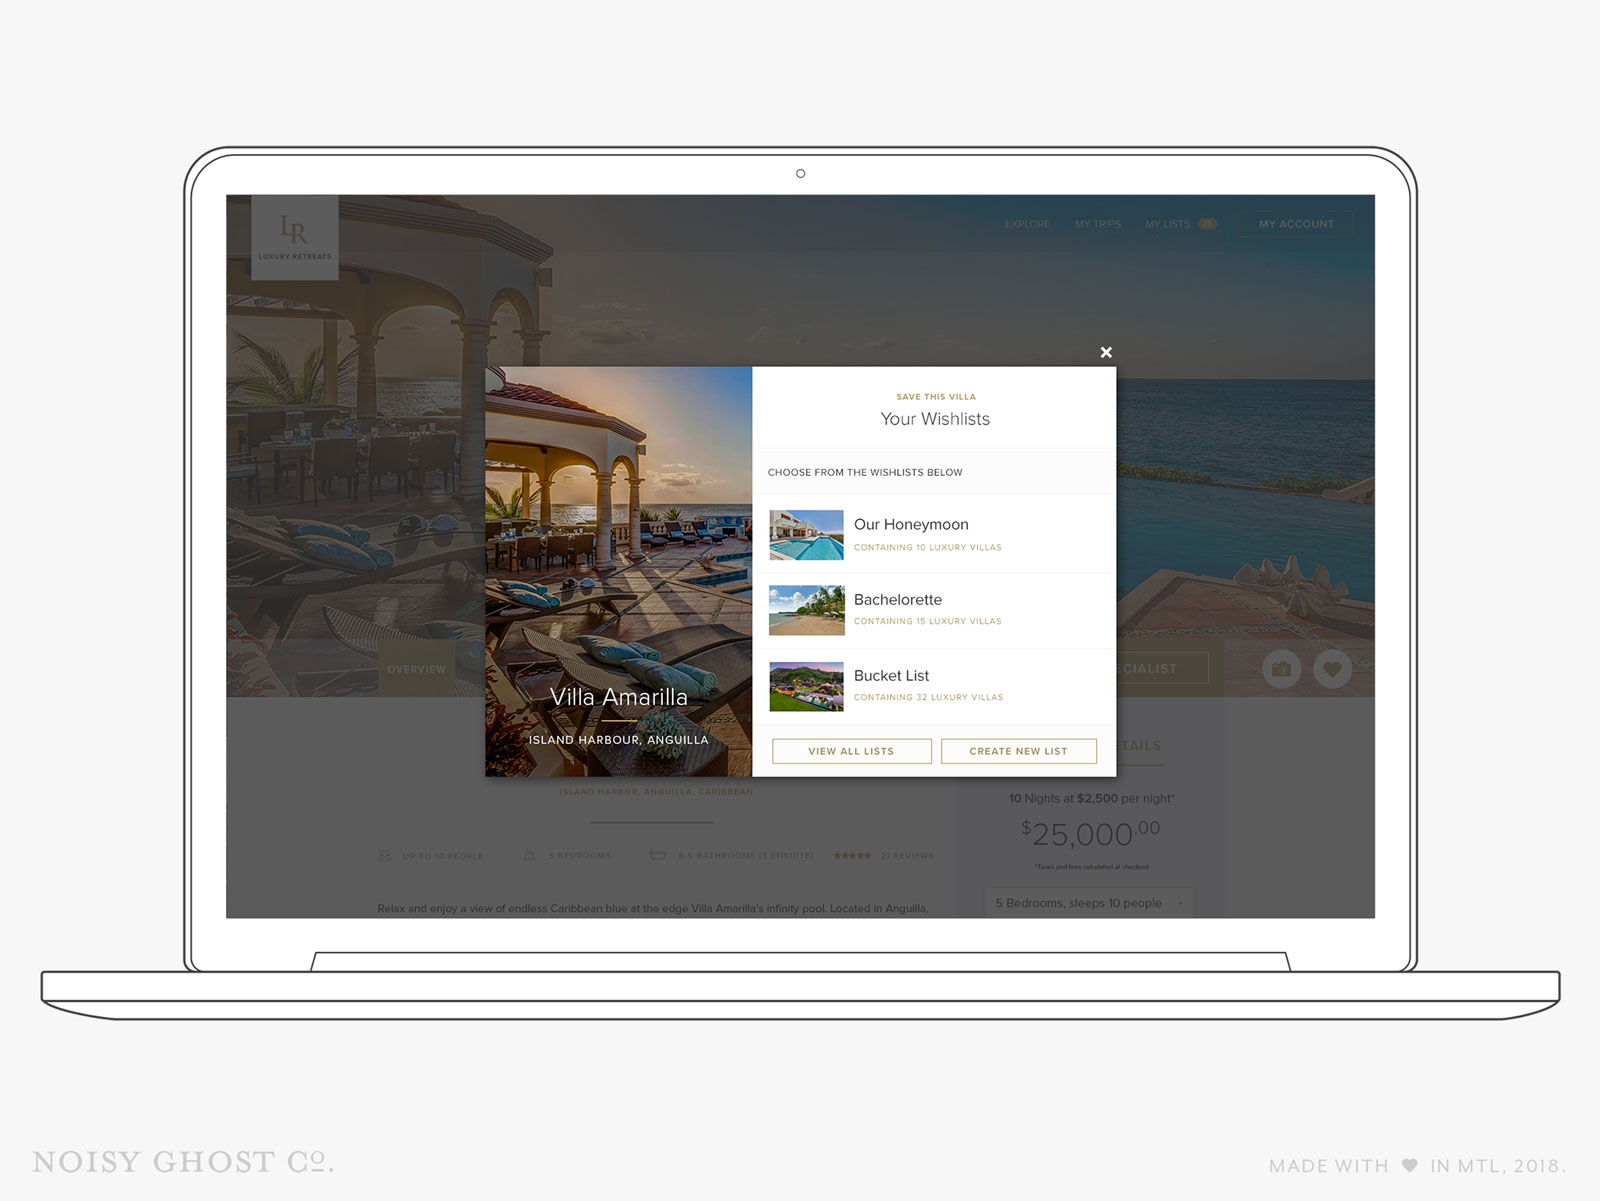 Luxury Retreats travel website design by Noisy Ghost Co.